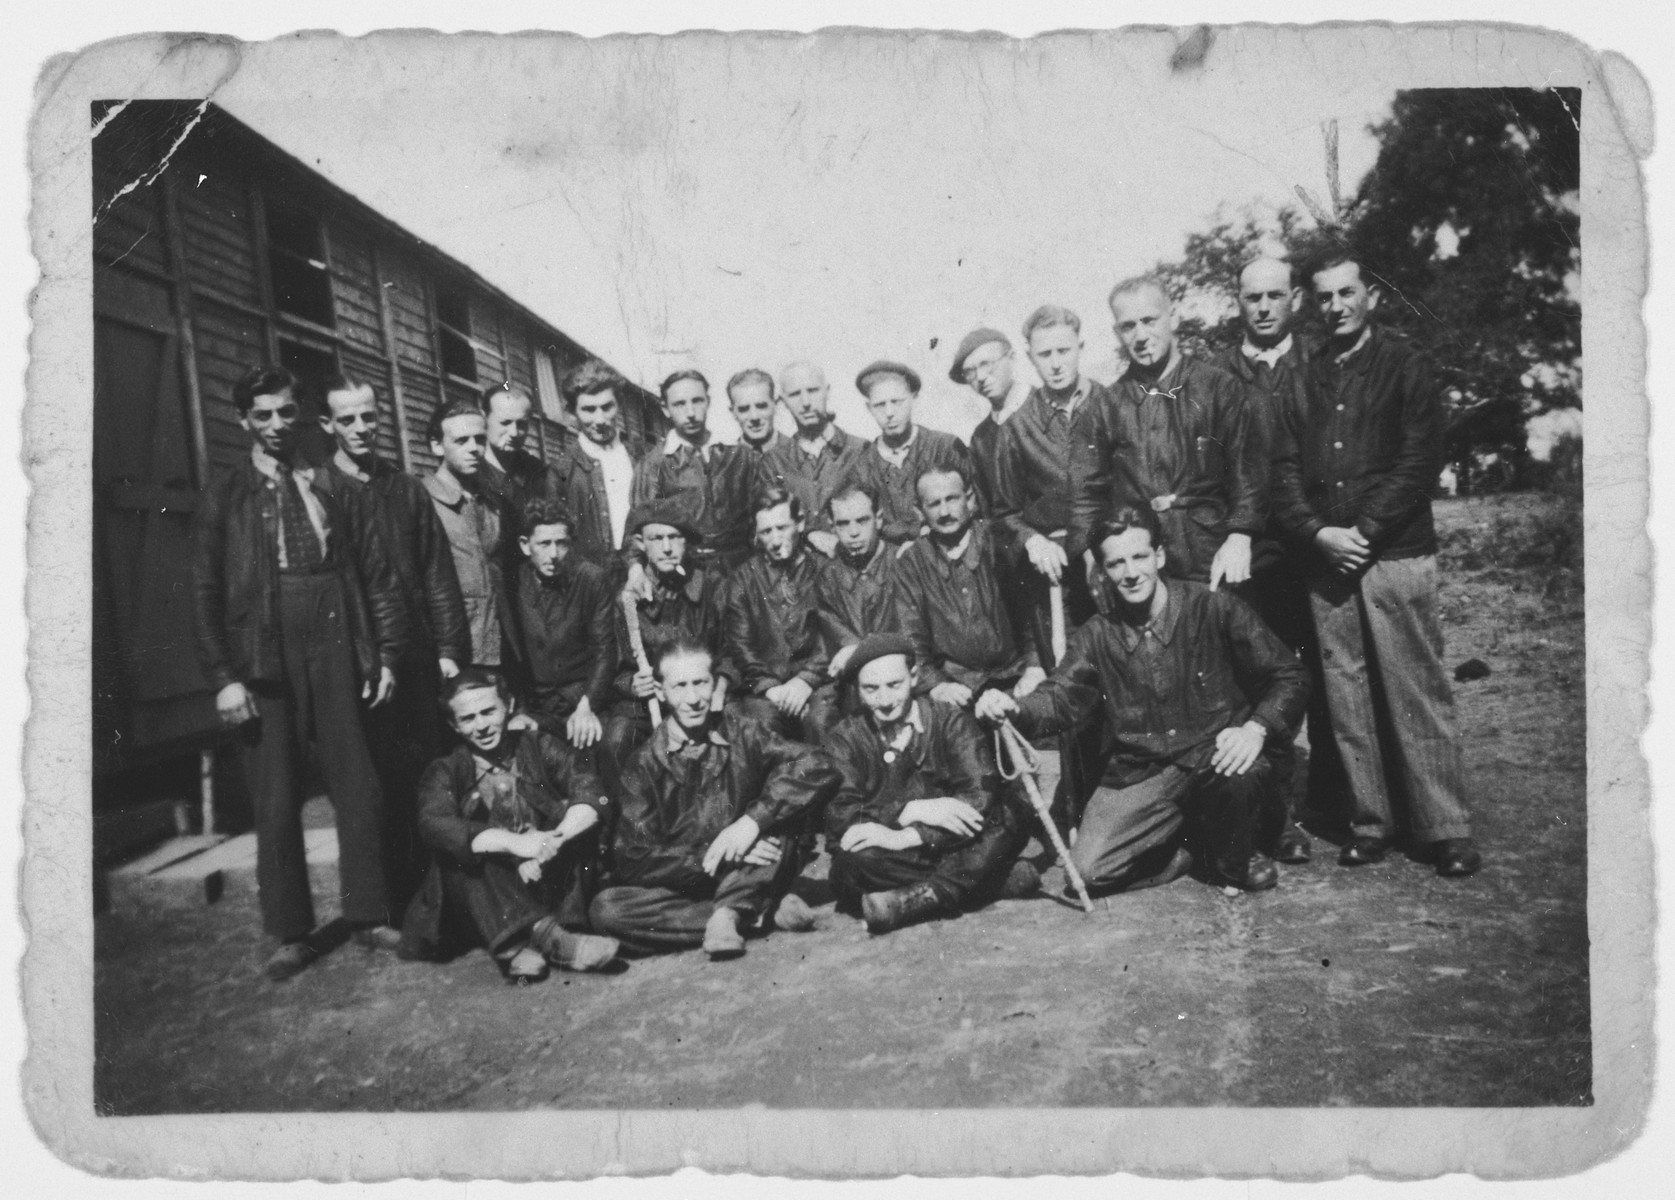 Prisoners in the Le Vernet transit camp.  Among those pictured is Joseph Schlanger (b. 2/18/05) who perished after being deported from Drancy in 1943.